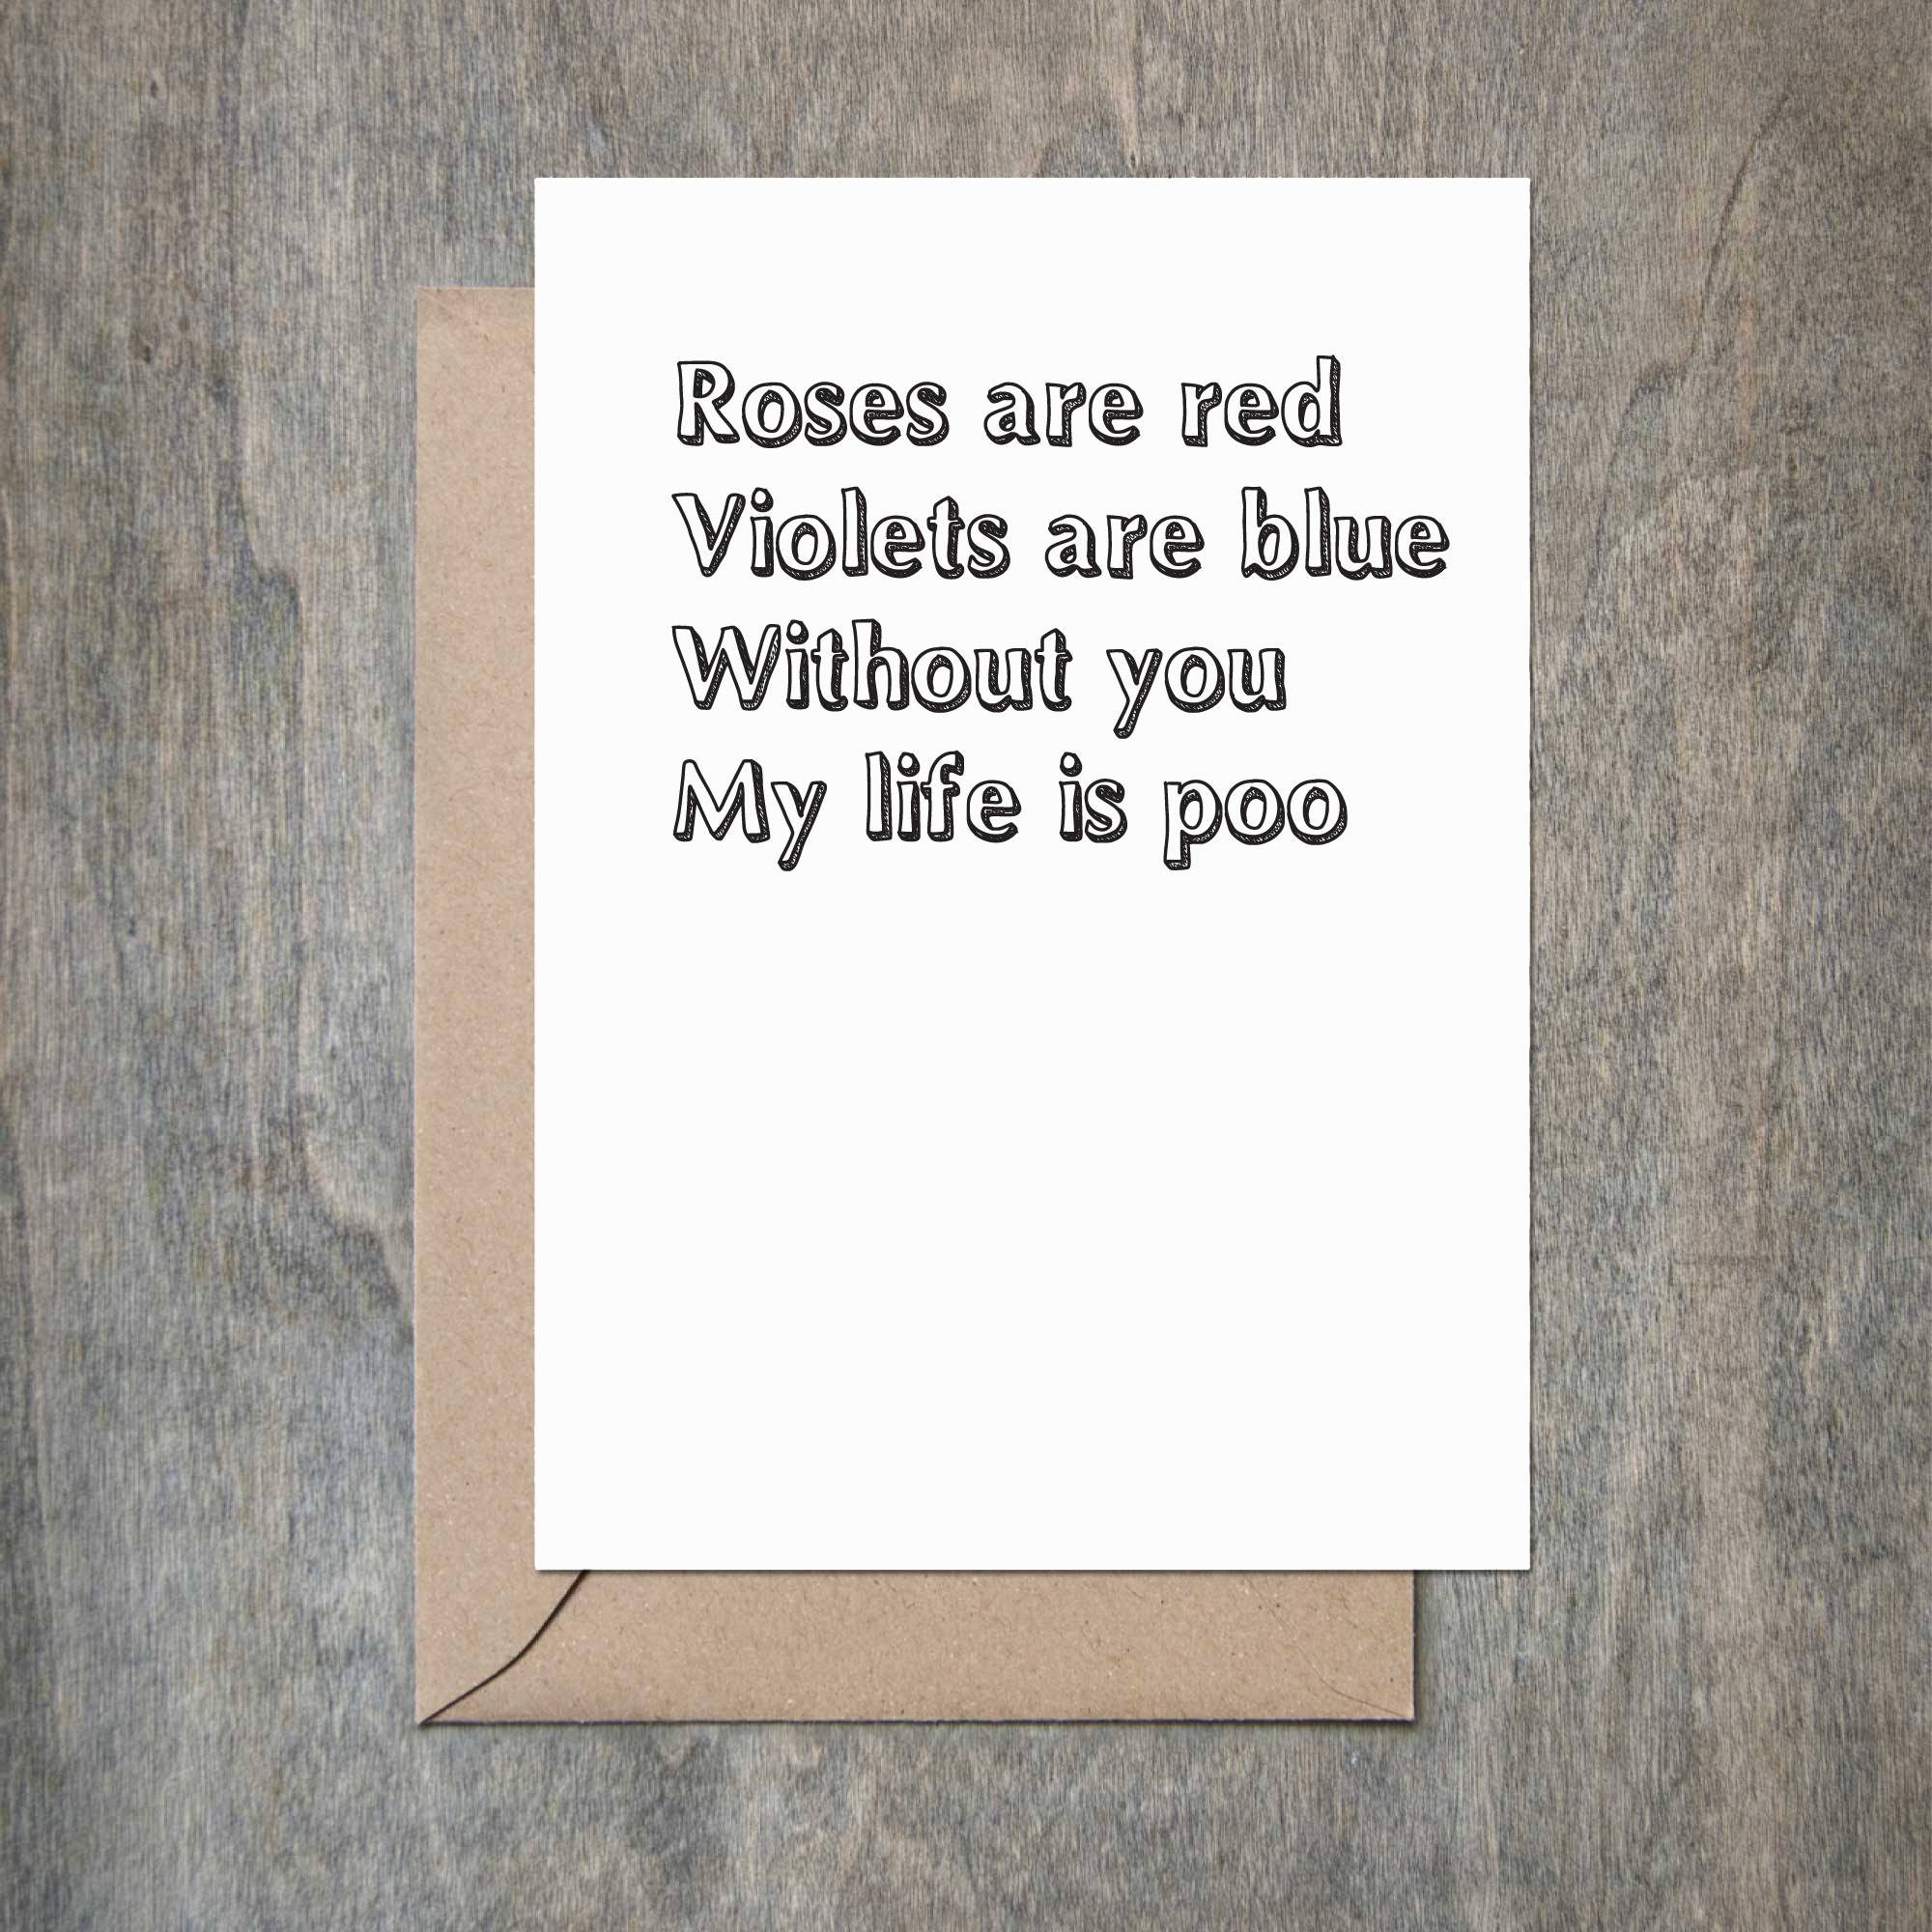 Roses Are Red And Violets Are Blue Missing You Miss You Card Sorry Card Anniversary Birthday Cards For Mom Funny Fathers Day Card Funny Mom Birthday Cards